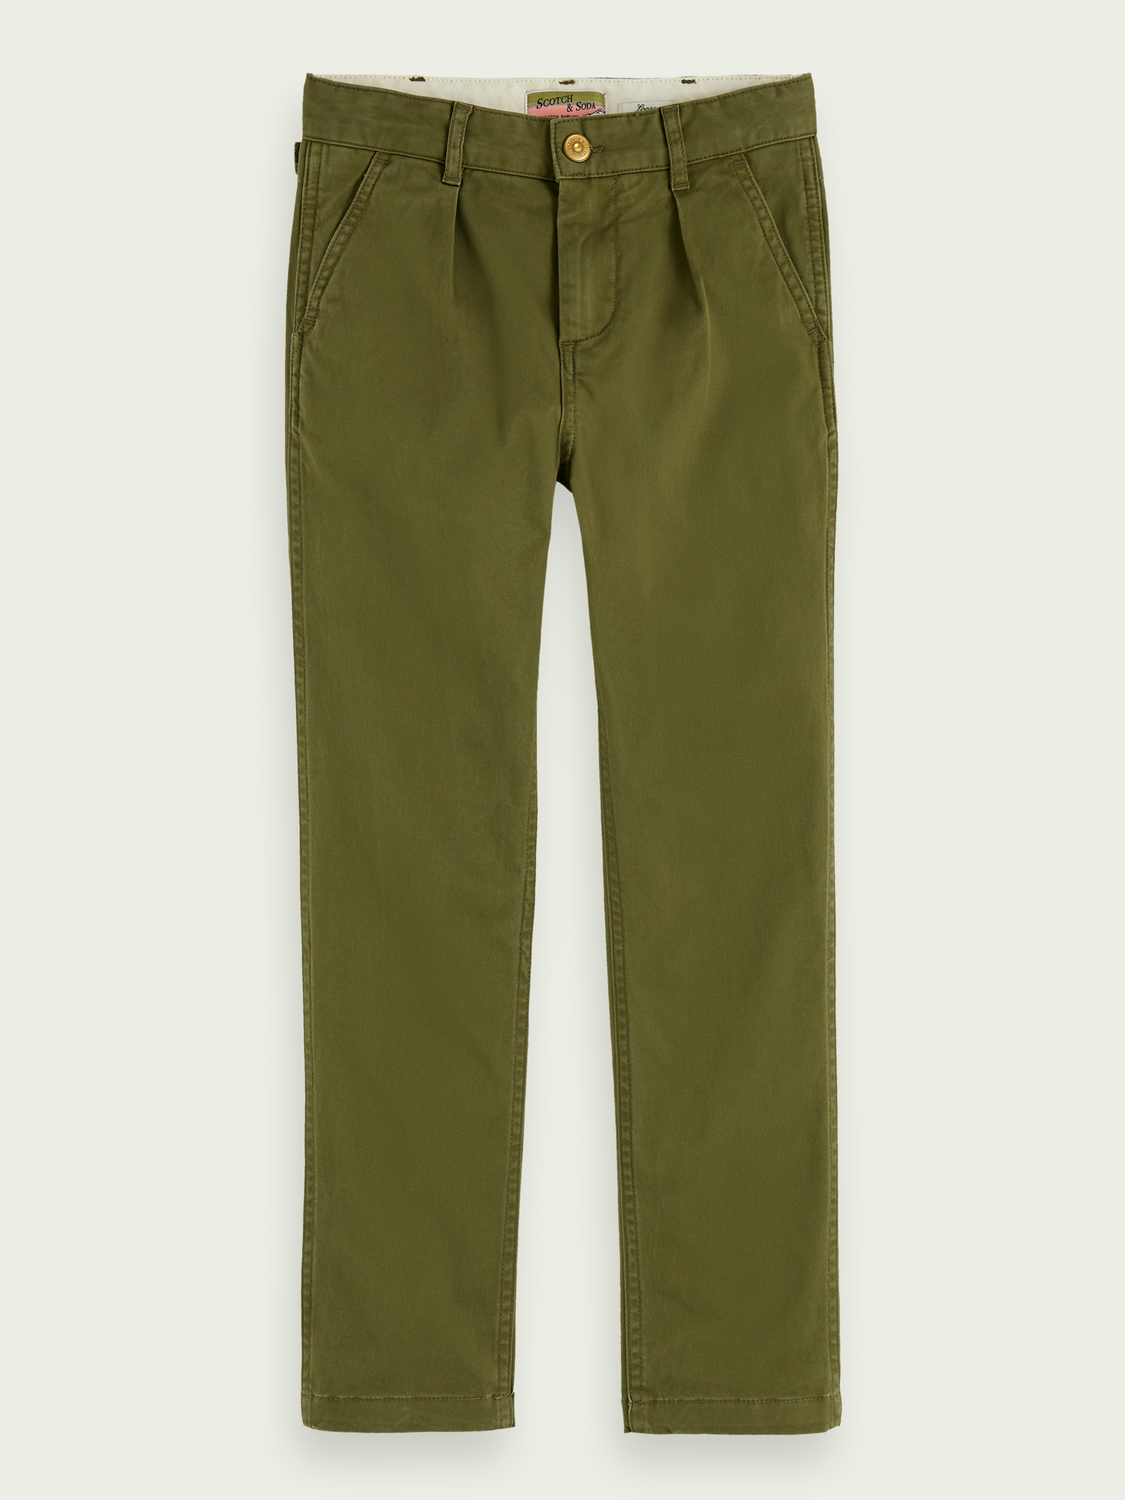 Boys Printed worker-style pants | Loose fit